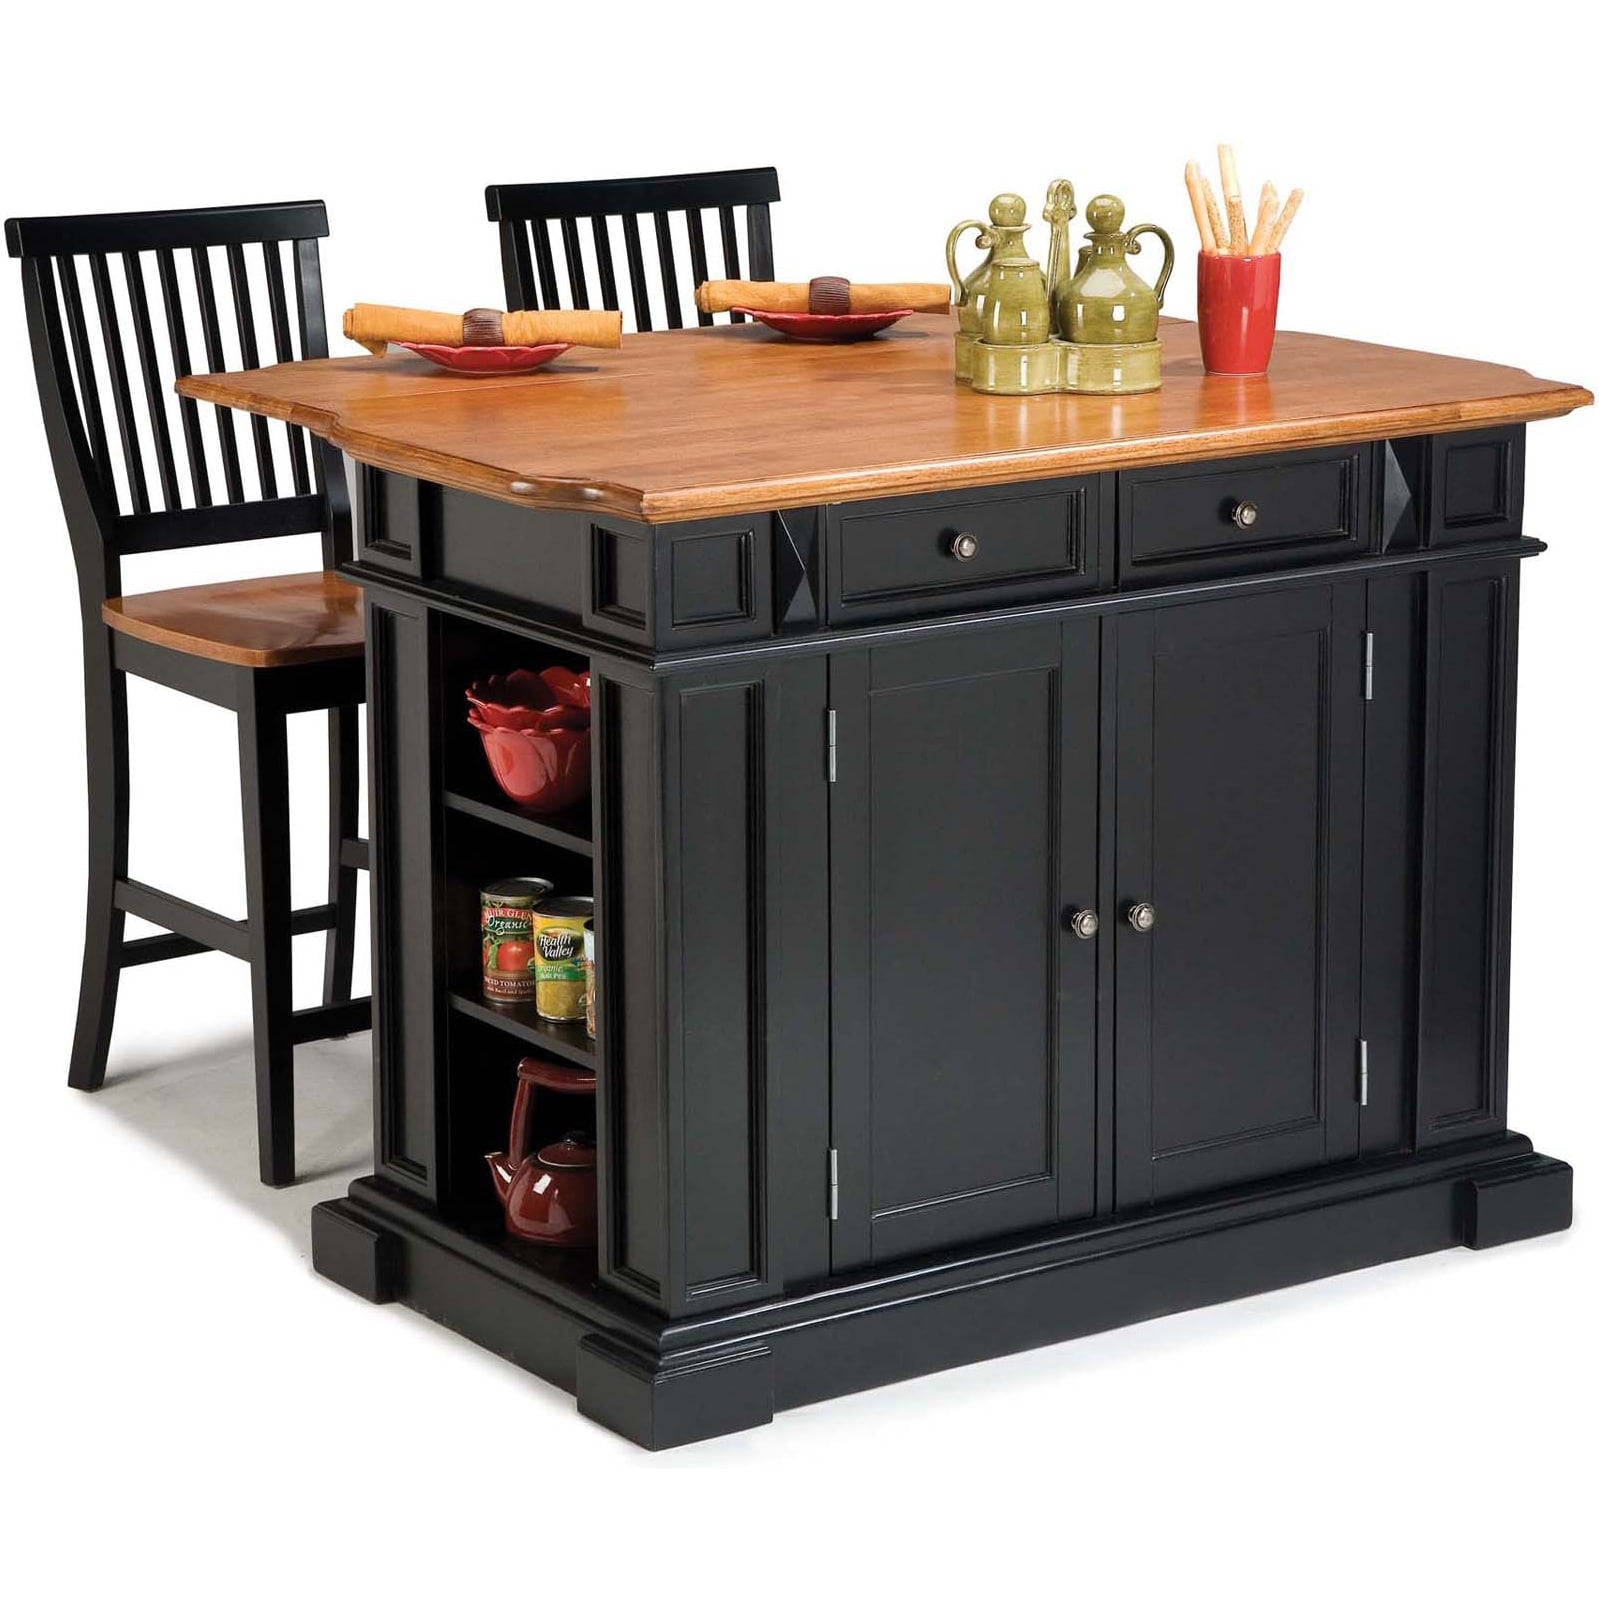 Gentil Black Distressed Oak Finish Kitchen Island And Barstools Kitchen Set